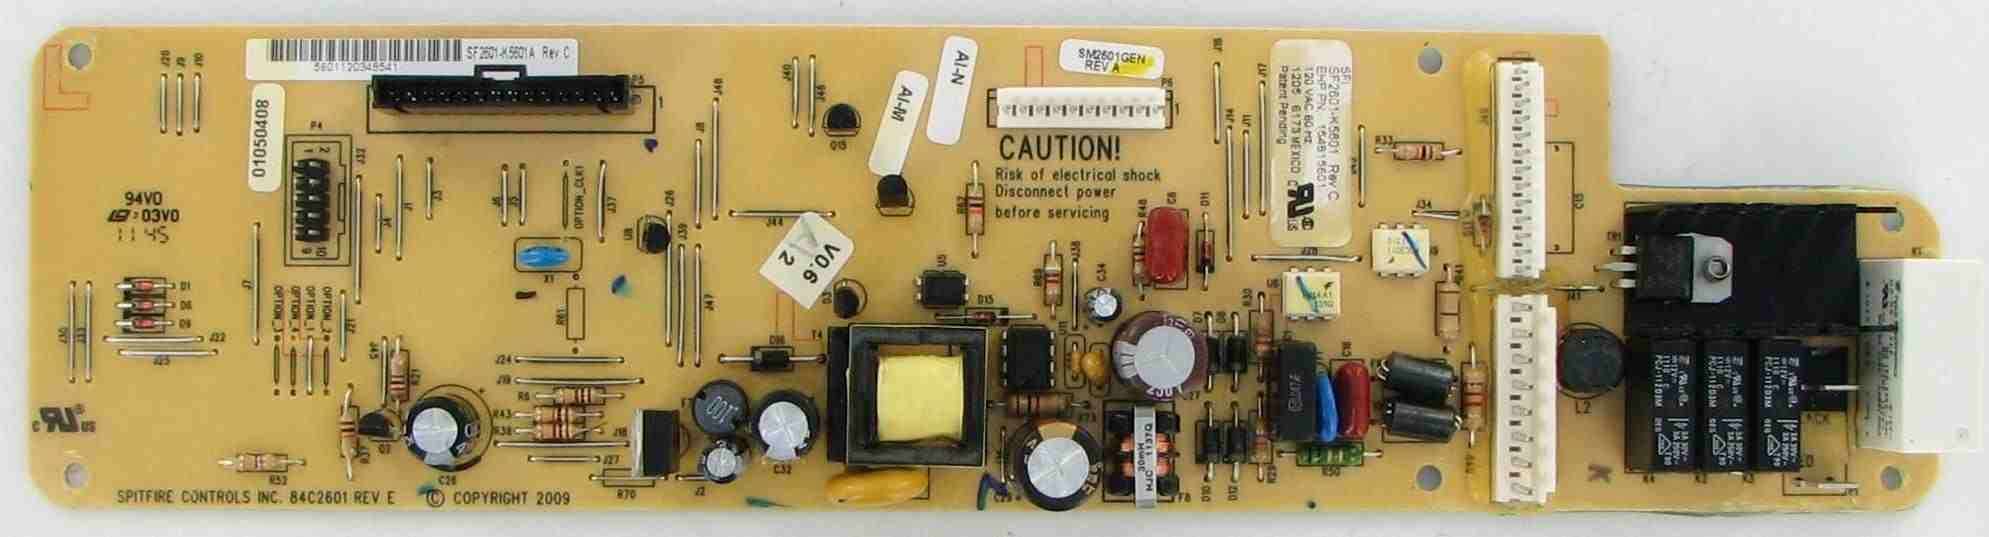 Kenmore Frigidaire Dishwasher Main Control Board BWR982250 fits 154752901 by Appliance Express Service